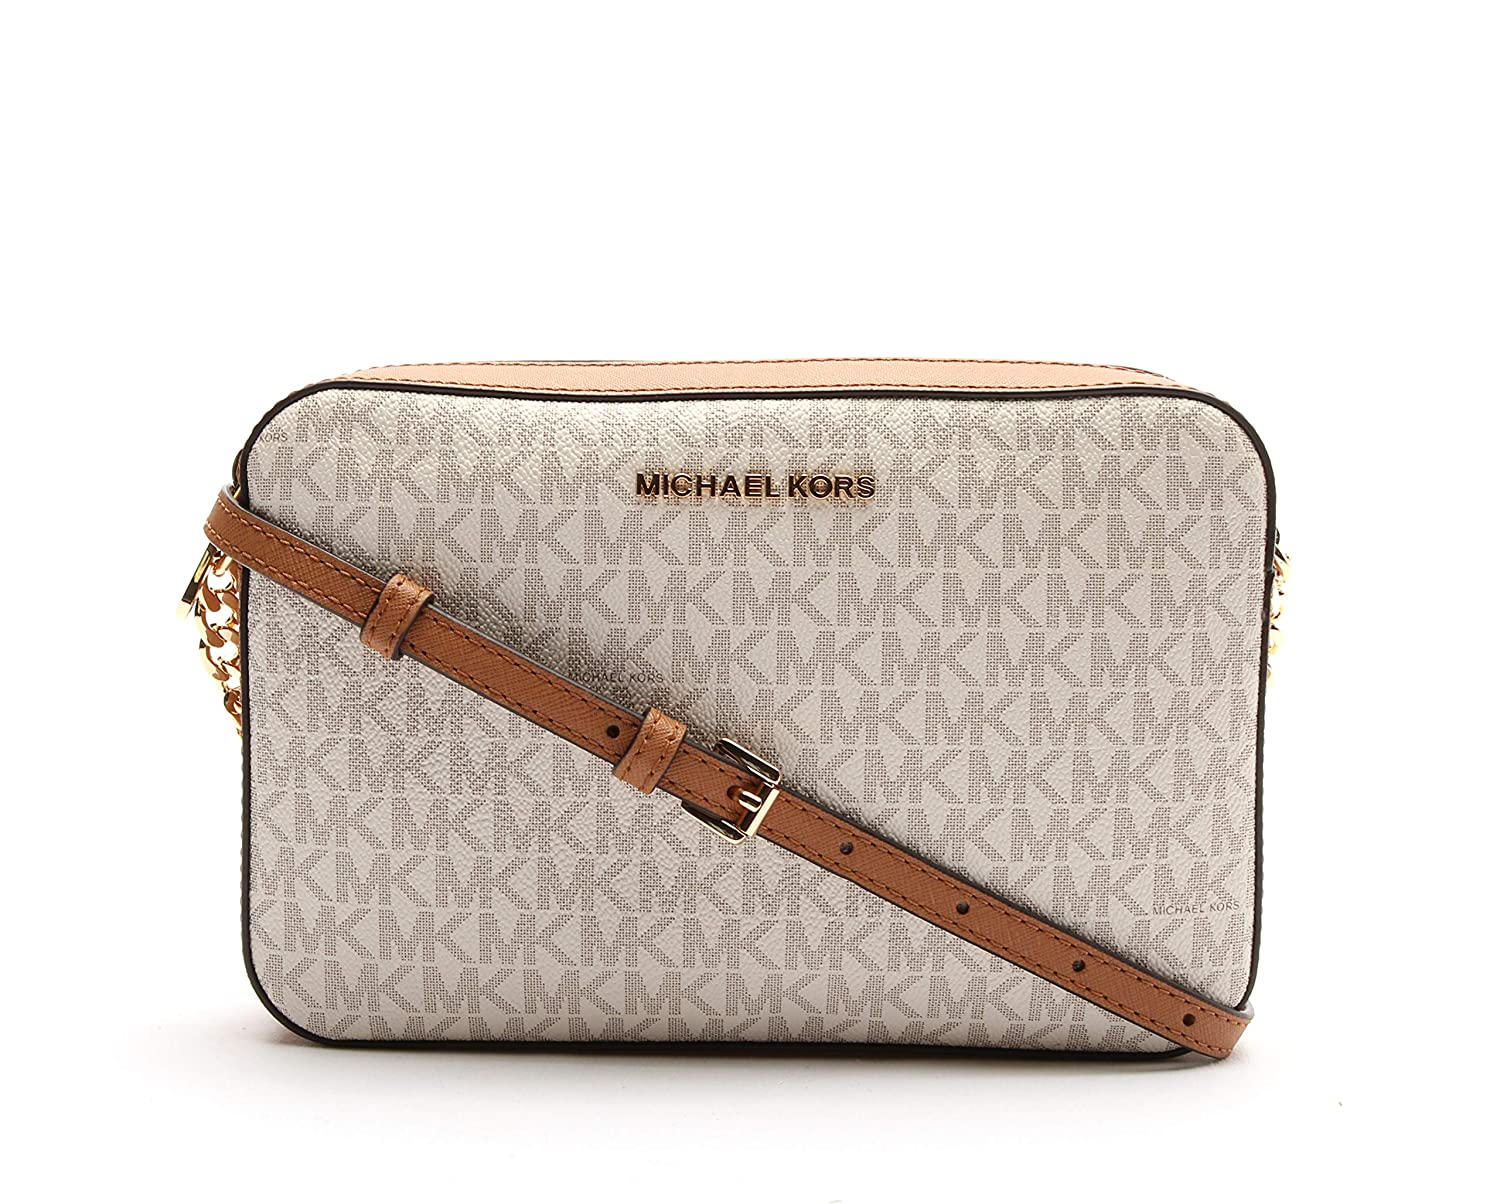 Michael Kors Jet Set Item Large Crossbody Vanilla/Acrn ...